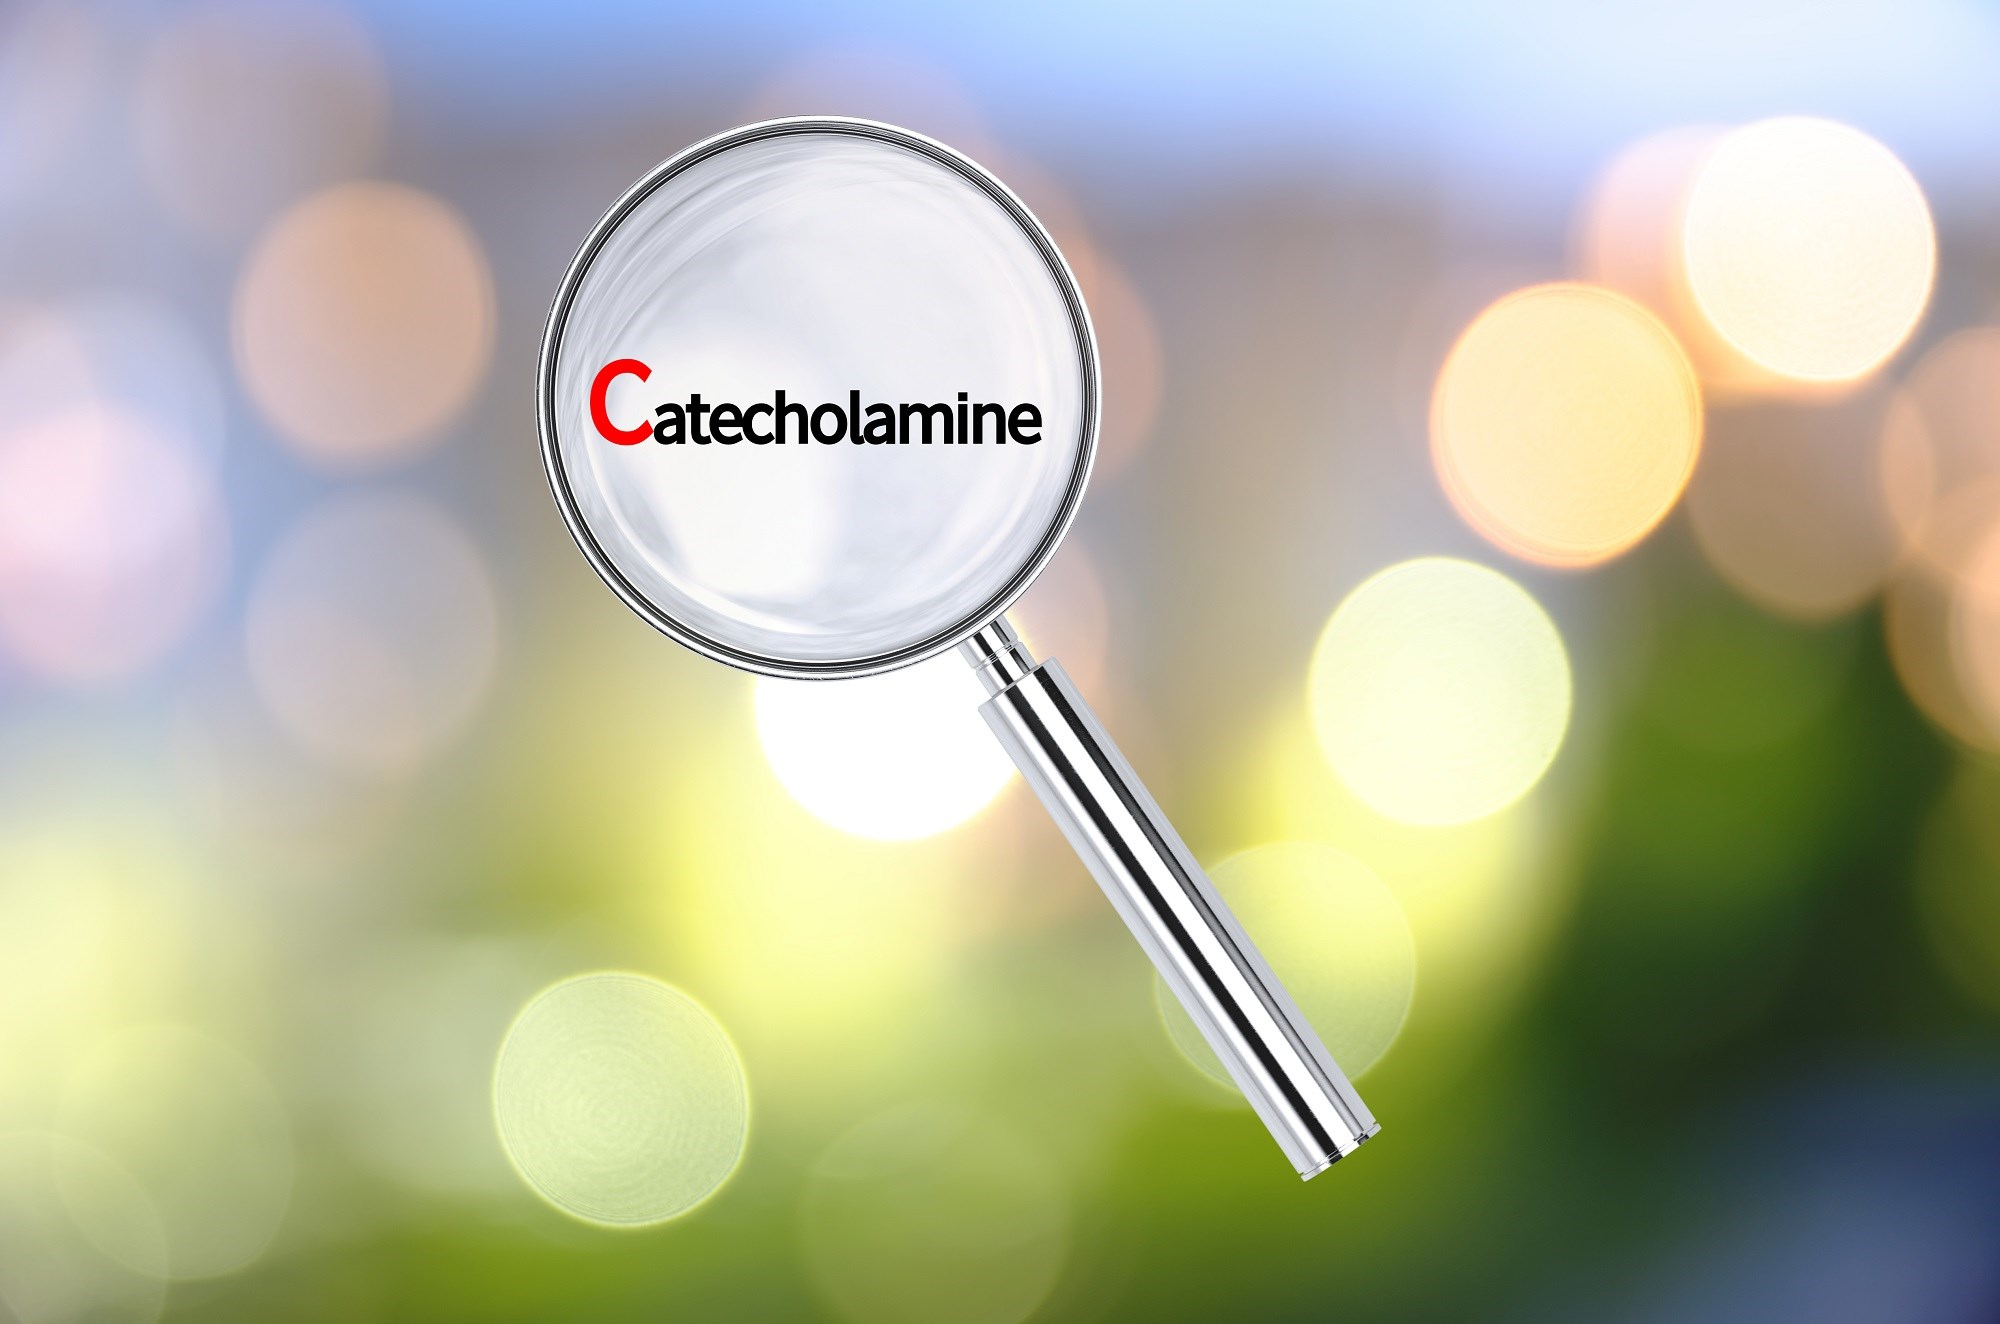 Effects of Mindfulness Therapy, Pharmacologic Prophylaxis on Catecholamine Levels in Migraine